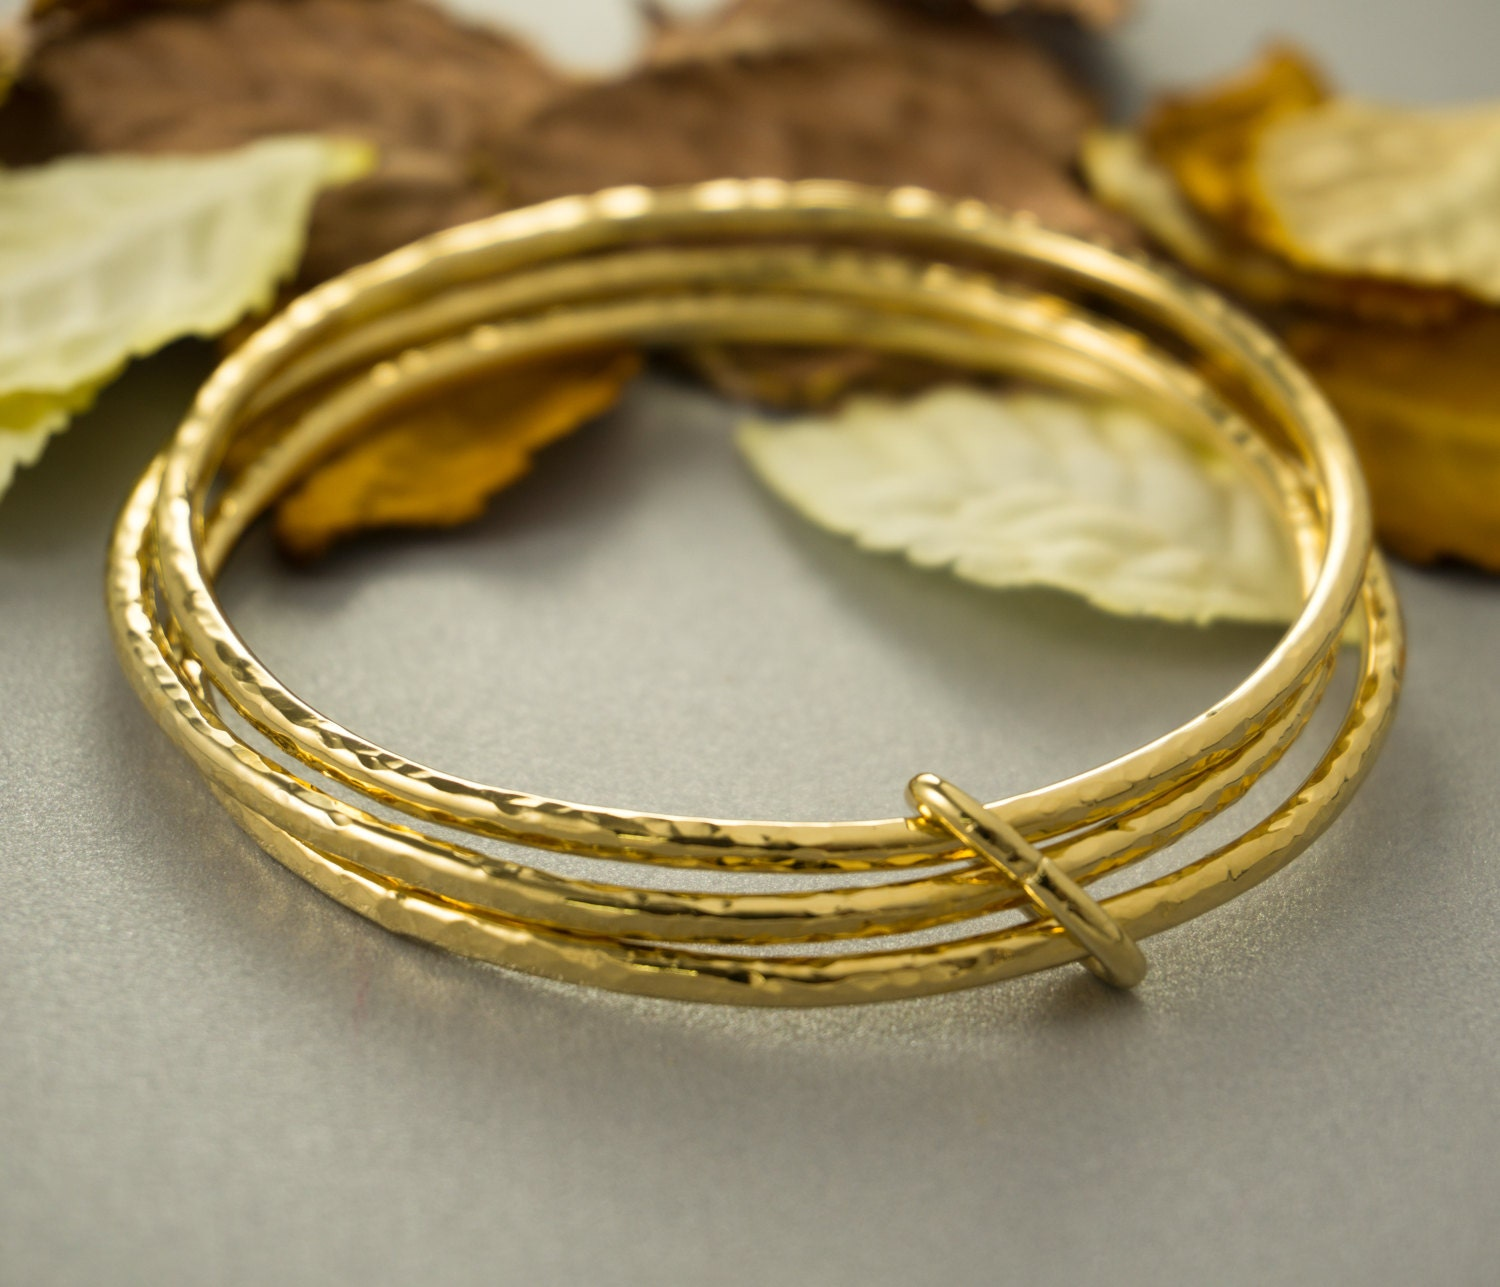 Unusual Gold Bracelet Bangle Photos - Jewelry Collection Ideas ...